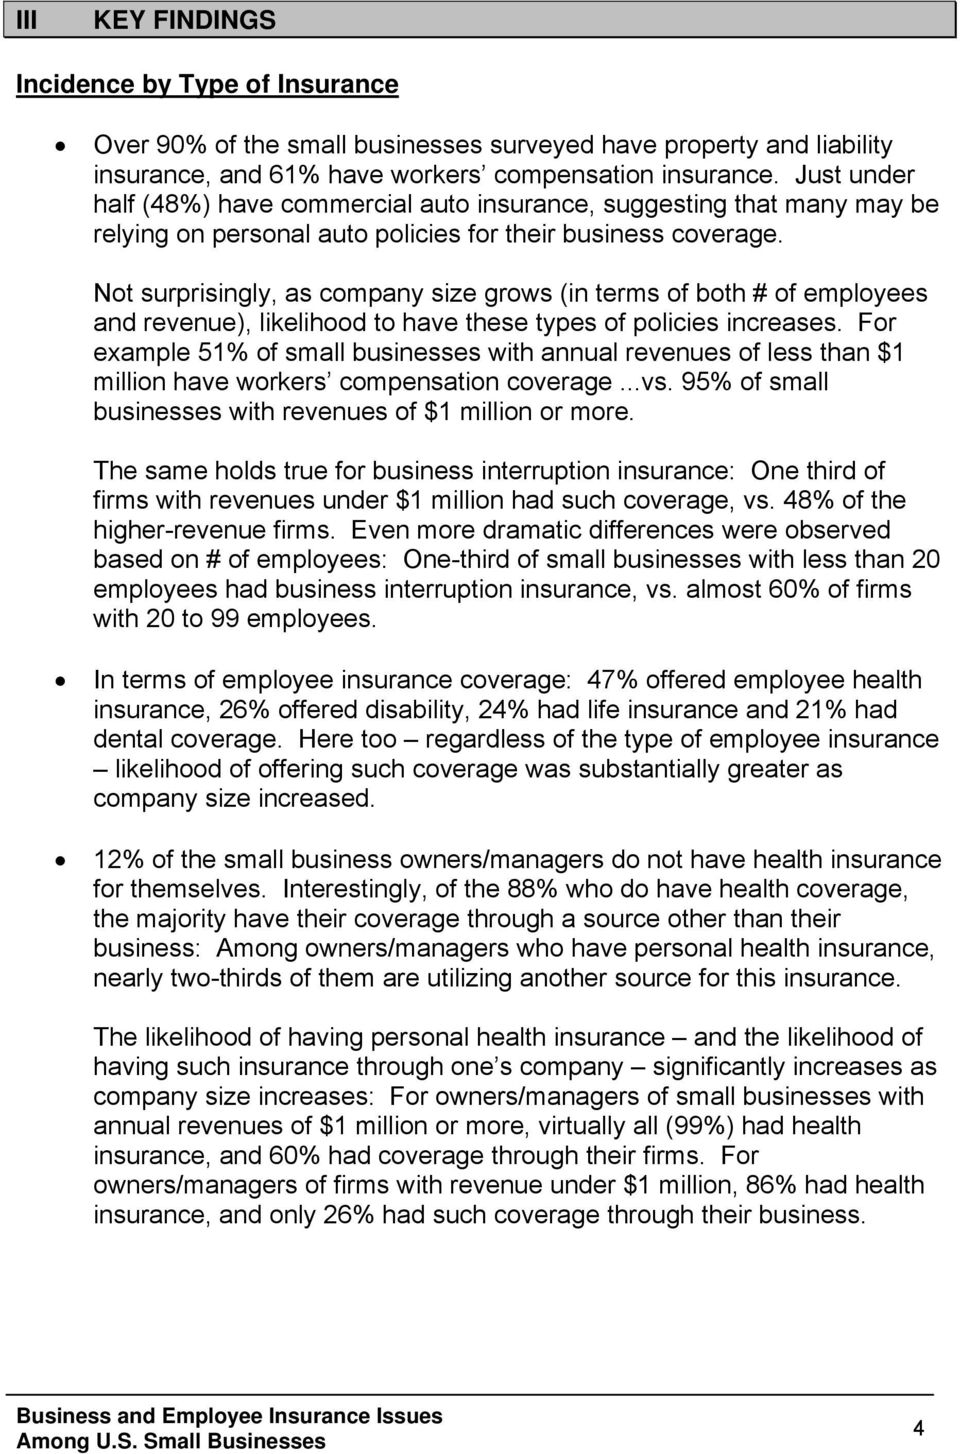 Not surprisingly, as company size grows (in terms of both # of employees and revenue), likelihood to have these types of policies increases.